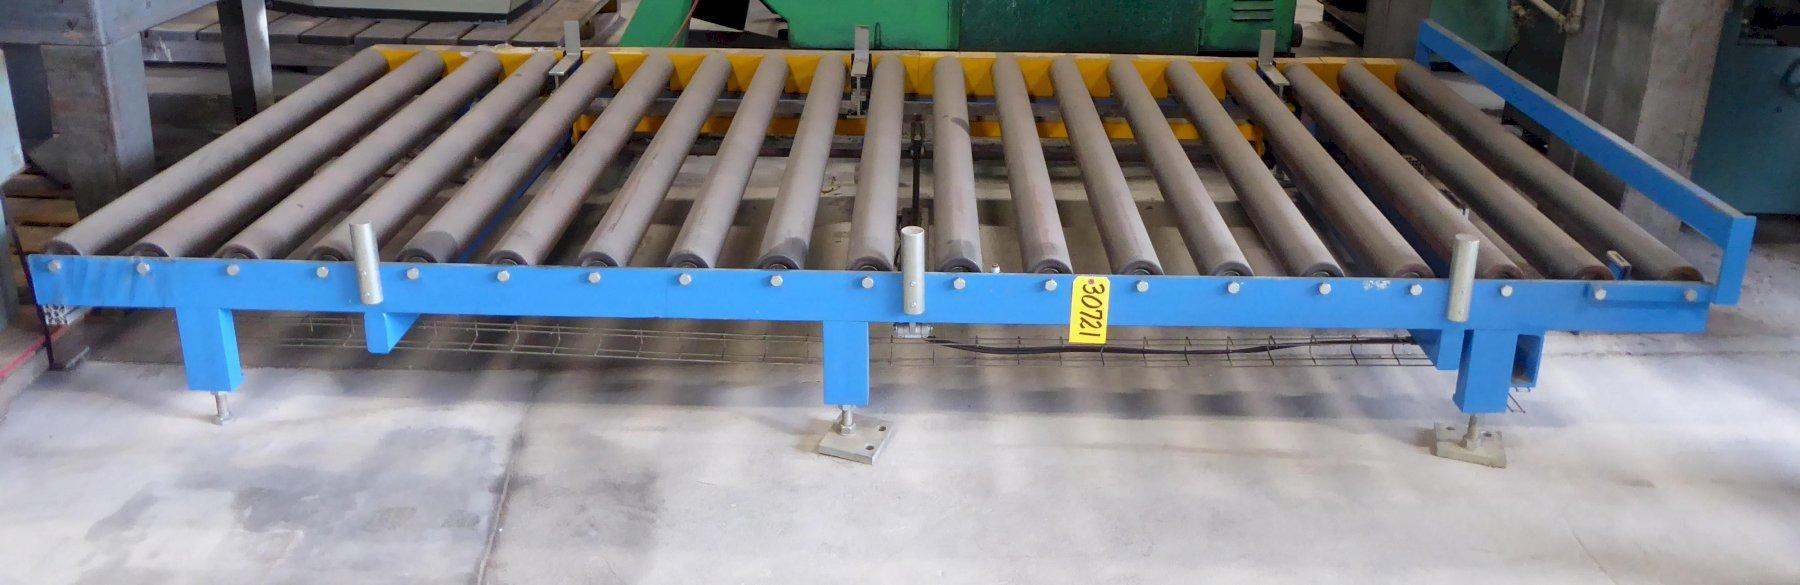 "Biele Power Roller Conveyor, 67"" Wide, 147"" Overall Length,  (19) 4-1/4"" Diameter Rolls On 8"" Centers, Approximately 18"" High-Adjustable Legs, 2011, (6) Available"